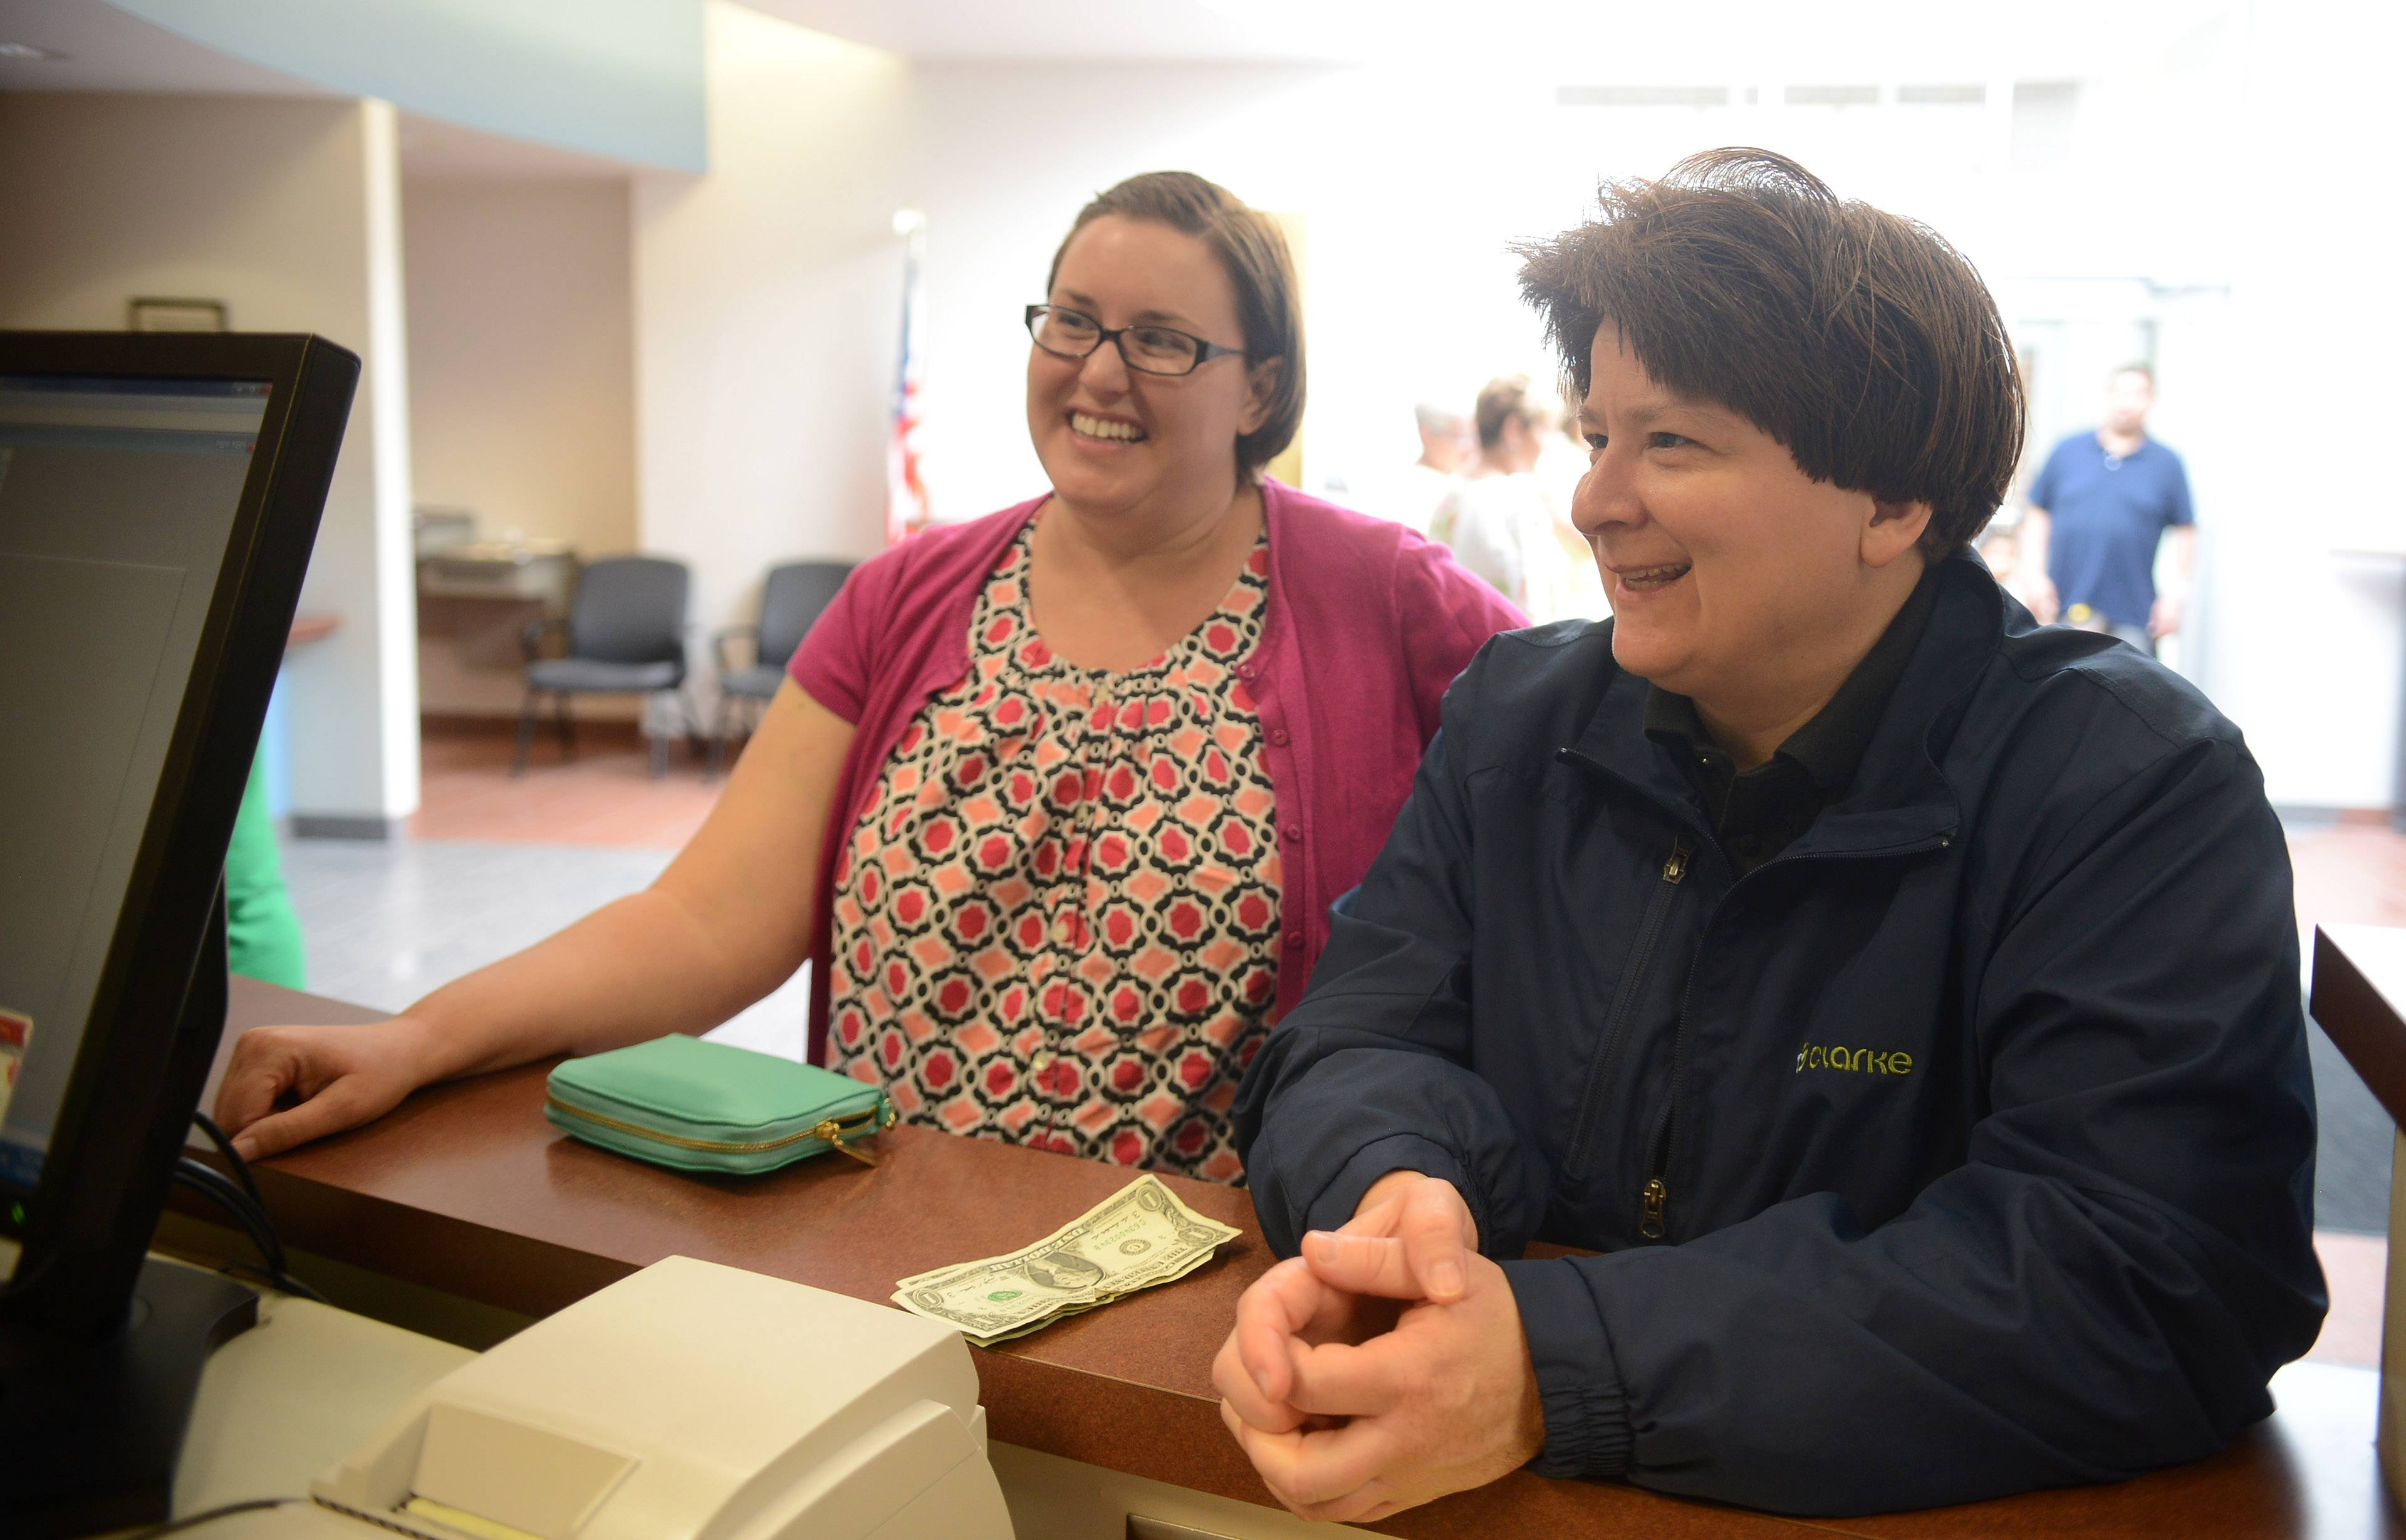 Tracy Simon, left, and Michelle Selander smile while answering questions so they can receive their marriage license at the Kane County clerk's office Monday morning in Geneva. They live in South Elgin and are planning to be married Saturday in Geneva.